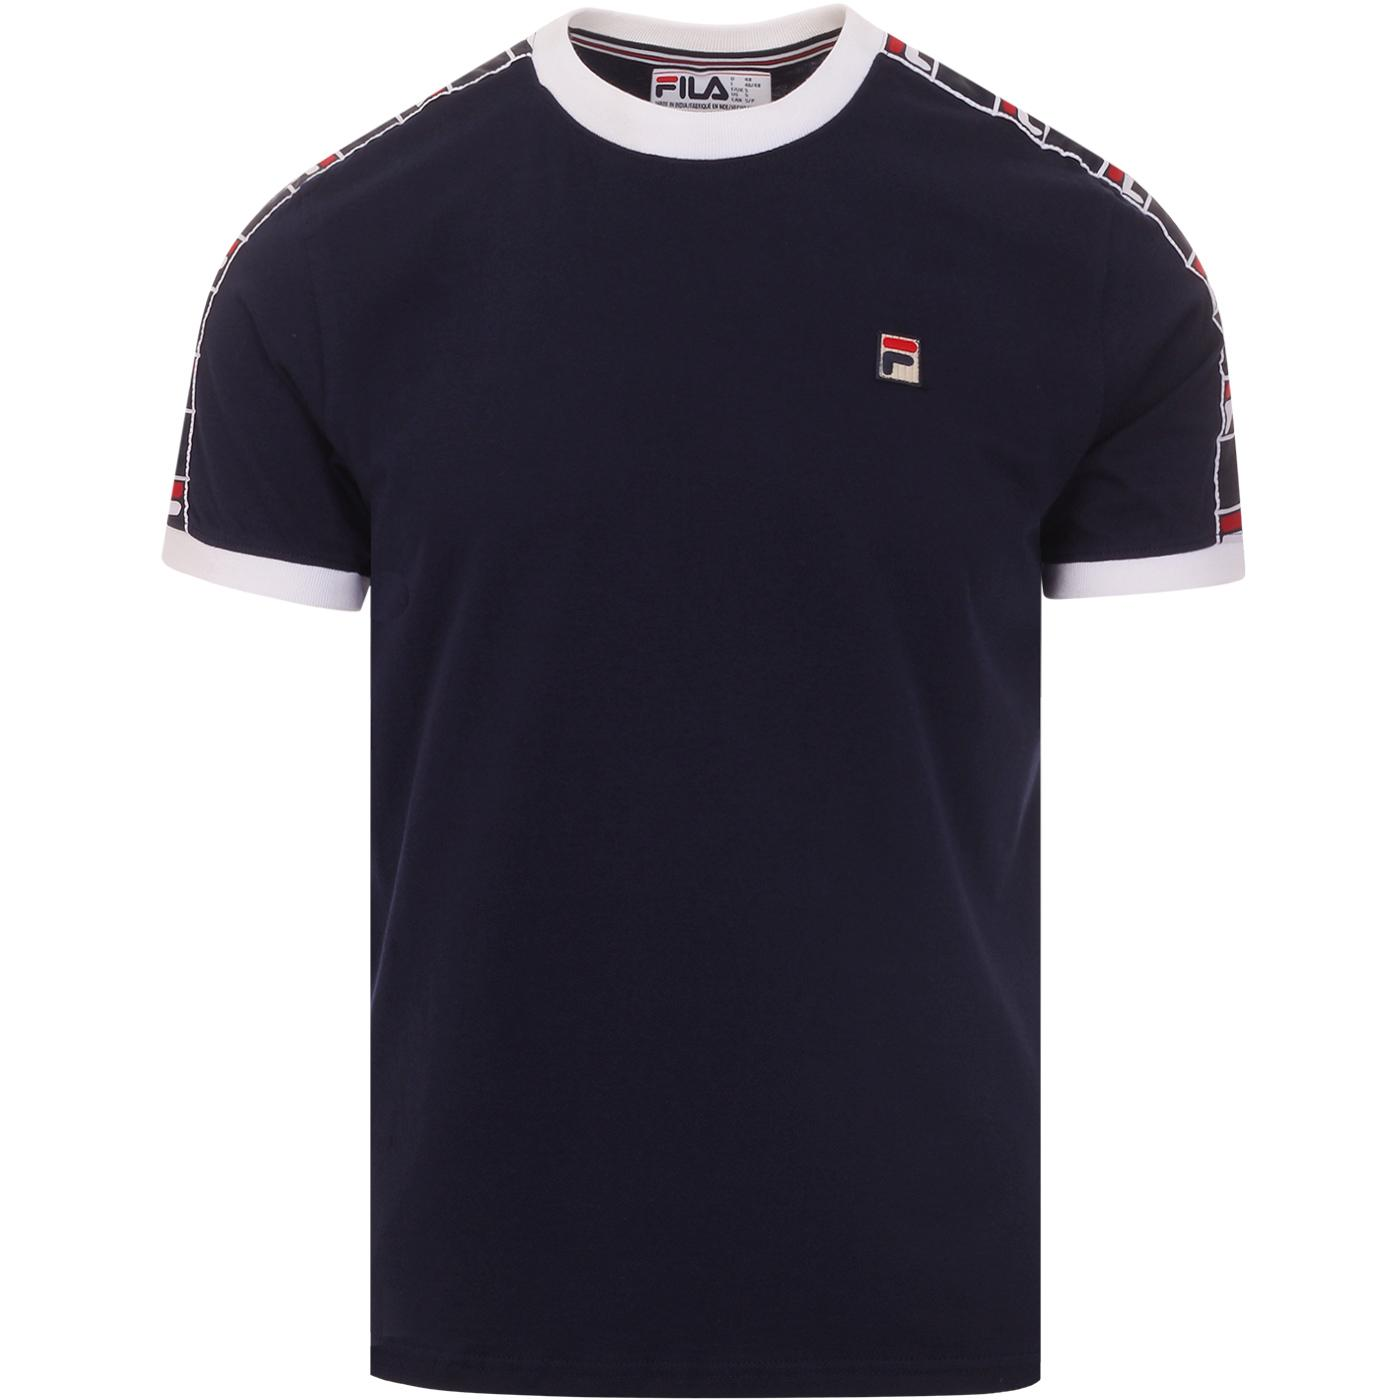 Luca FILA VINTAGE Taped Sleeve Ringer T-shirt NAVY